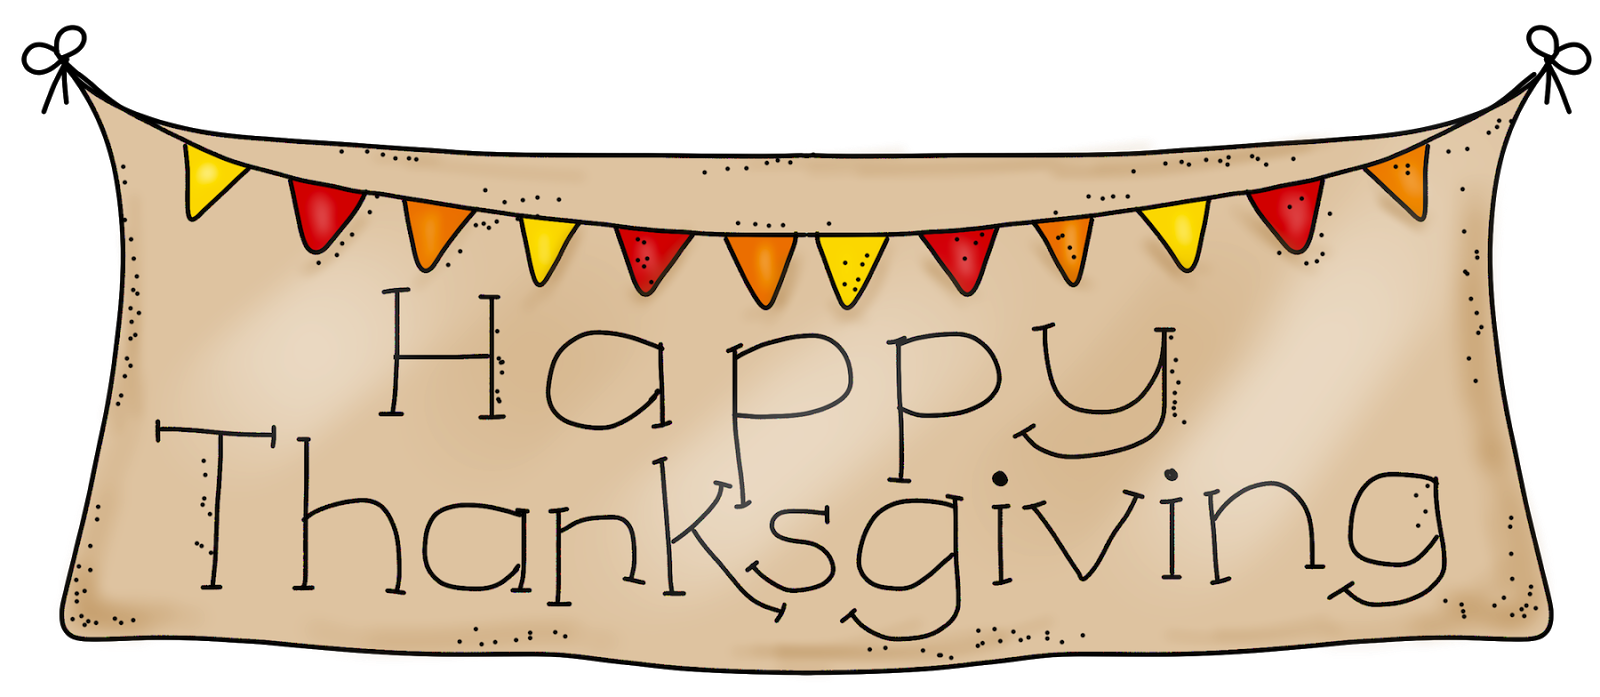 Christian thanksgiving clipart free jpg transparent download Thanksgiving clipart printables - ClipartFest jpg transparent download